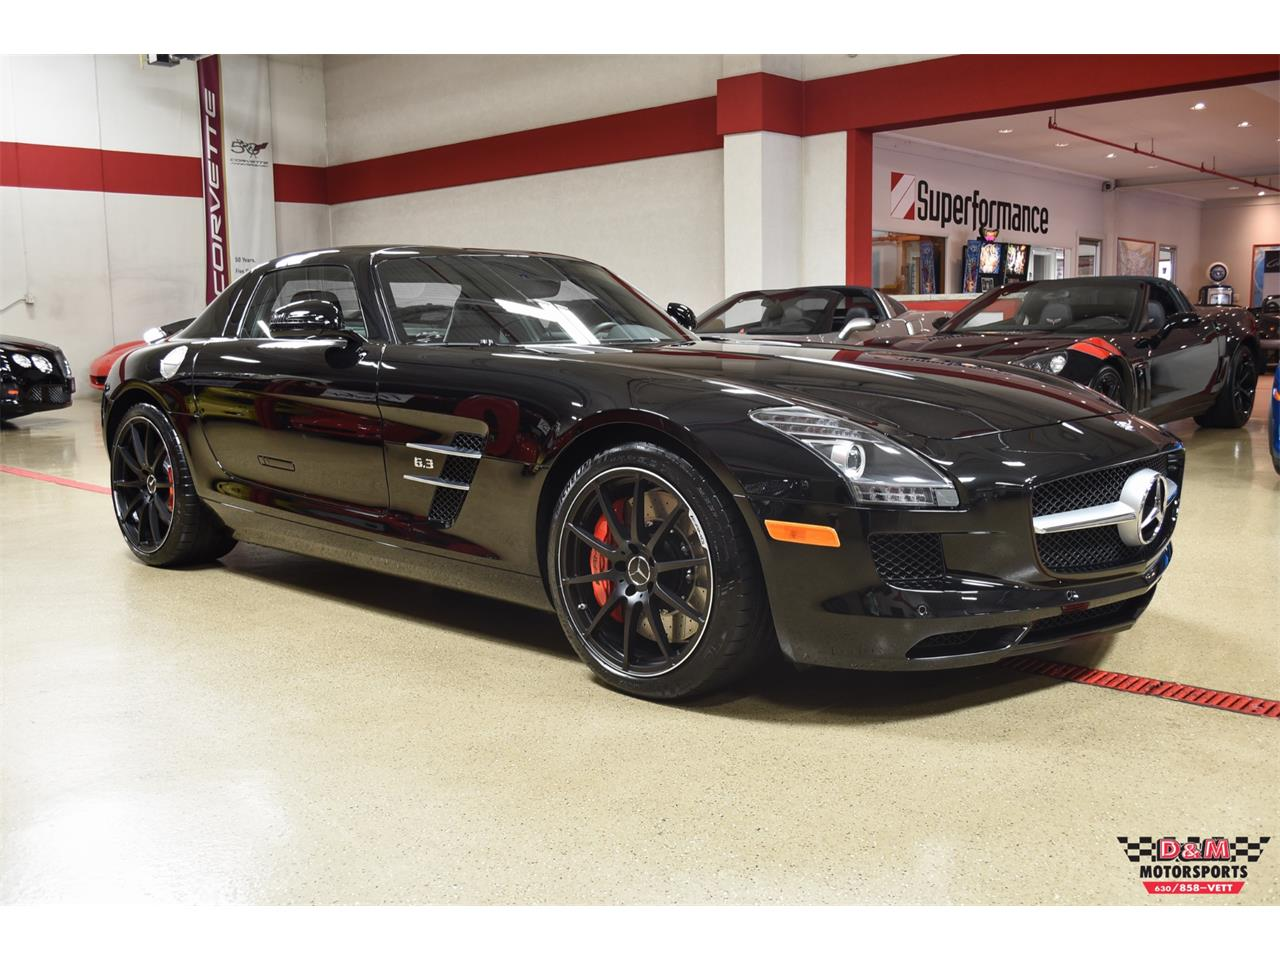 Large Picture of 2012 Mercedes-Benz SLS AMG - $199,995.00 - PXCB